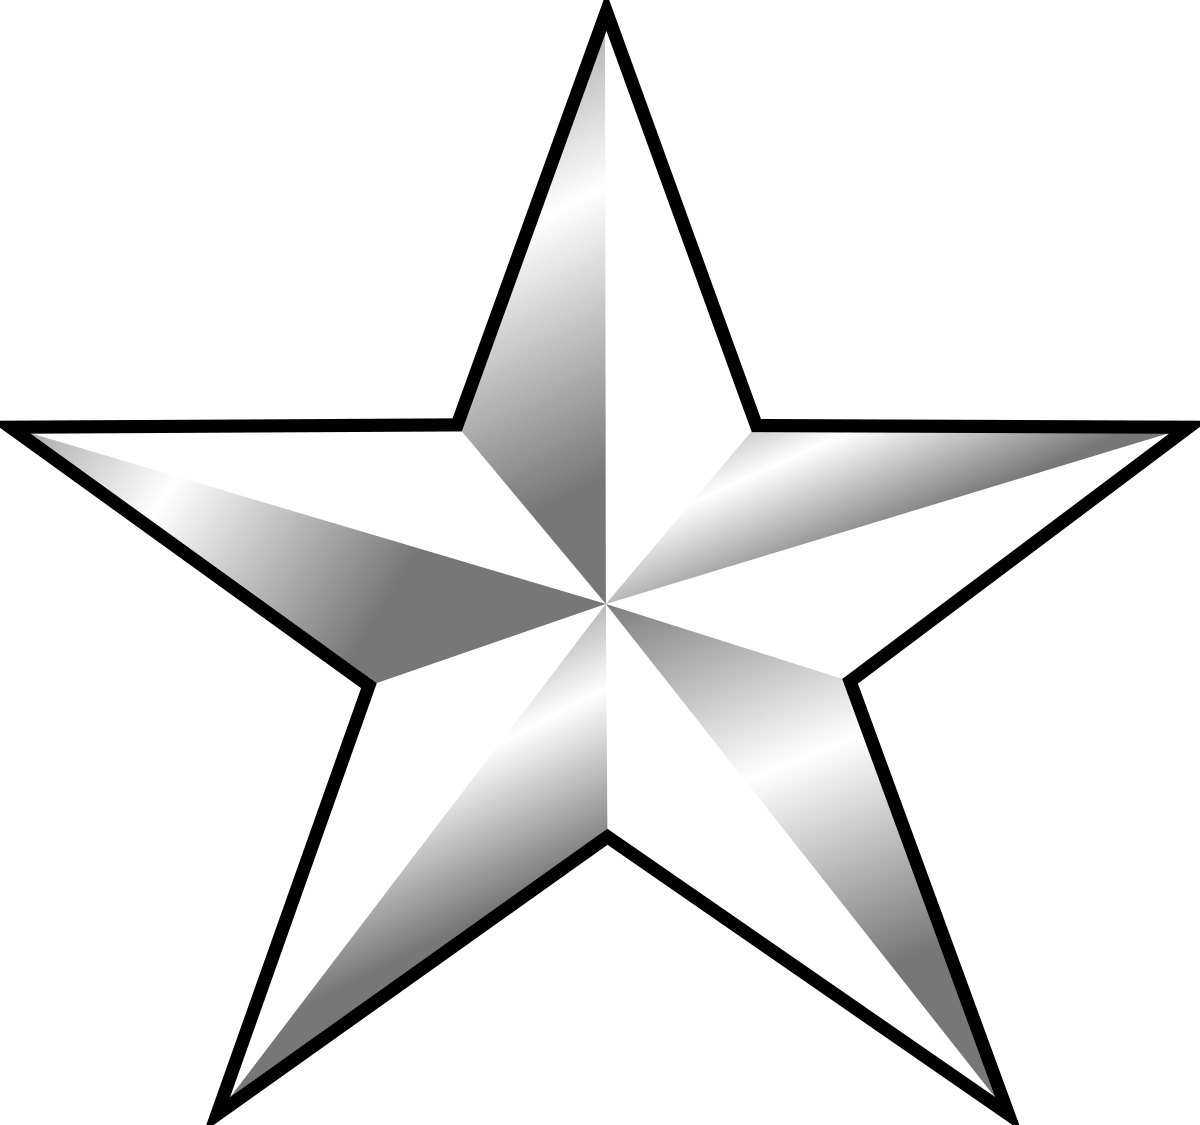 Naval star clipart image royalty free stock One-star rank - Wikipedia image royalty free stock